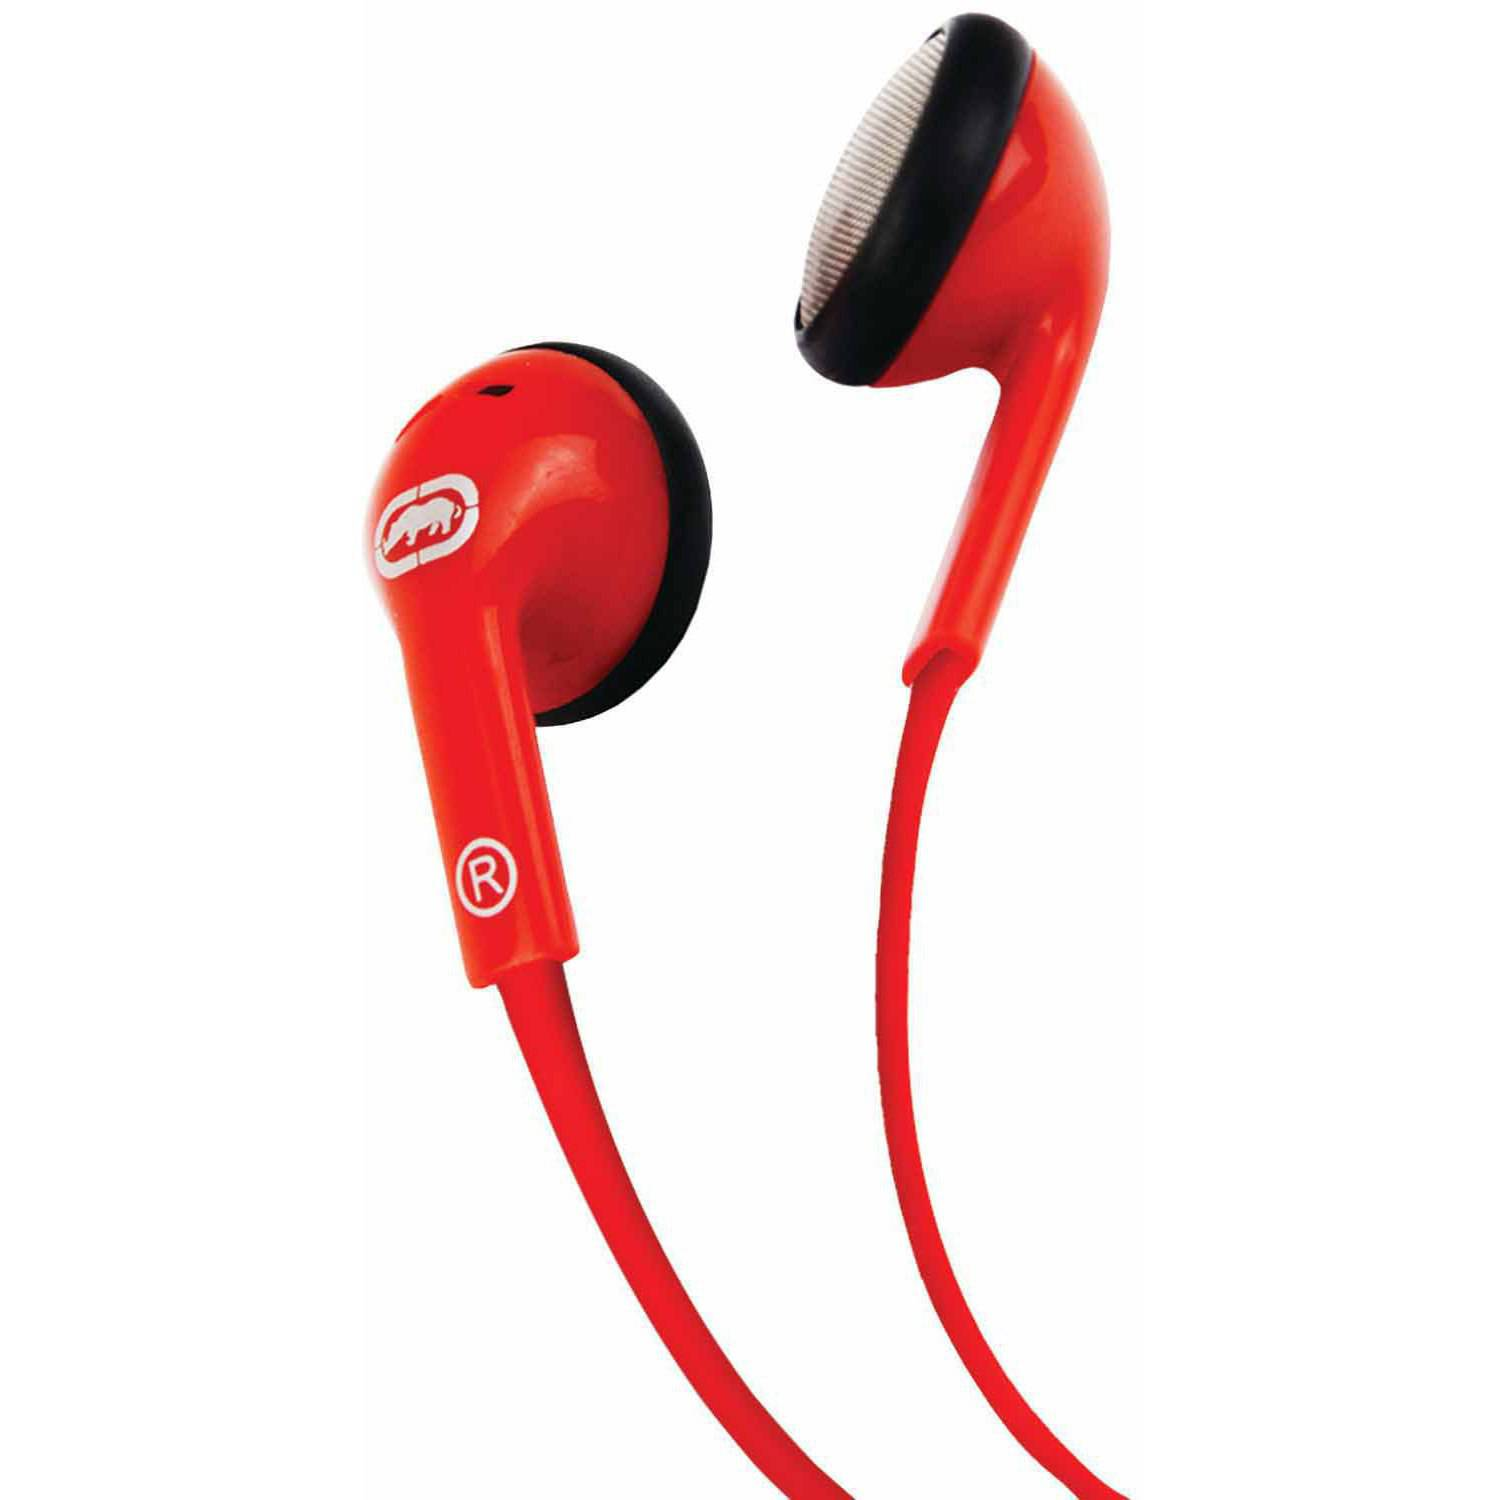 Ecko Unlimited Dome Earbuds with Microphone